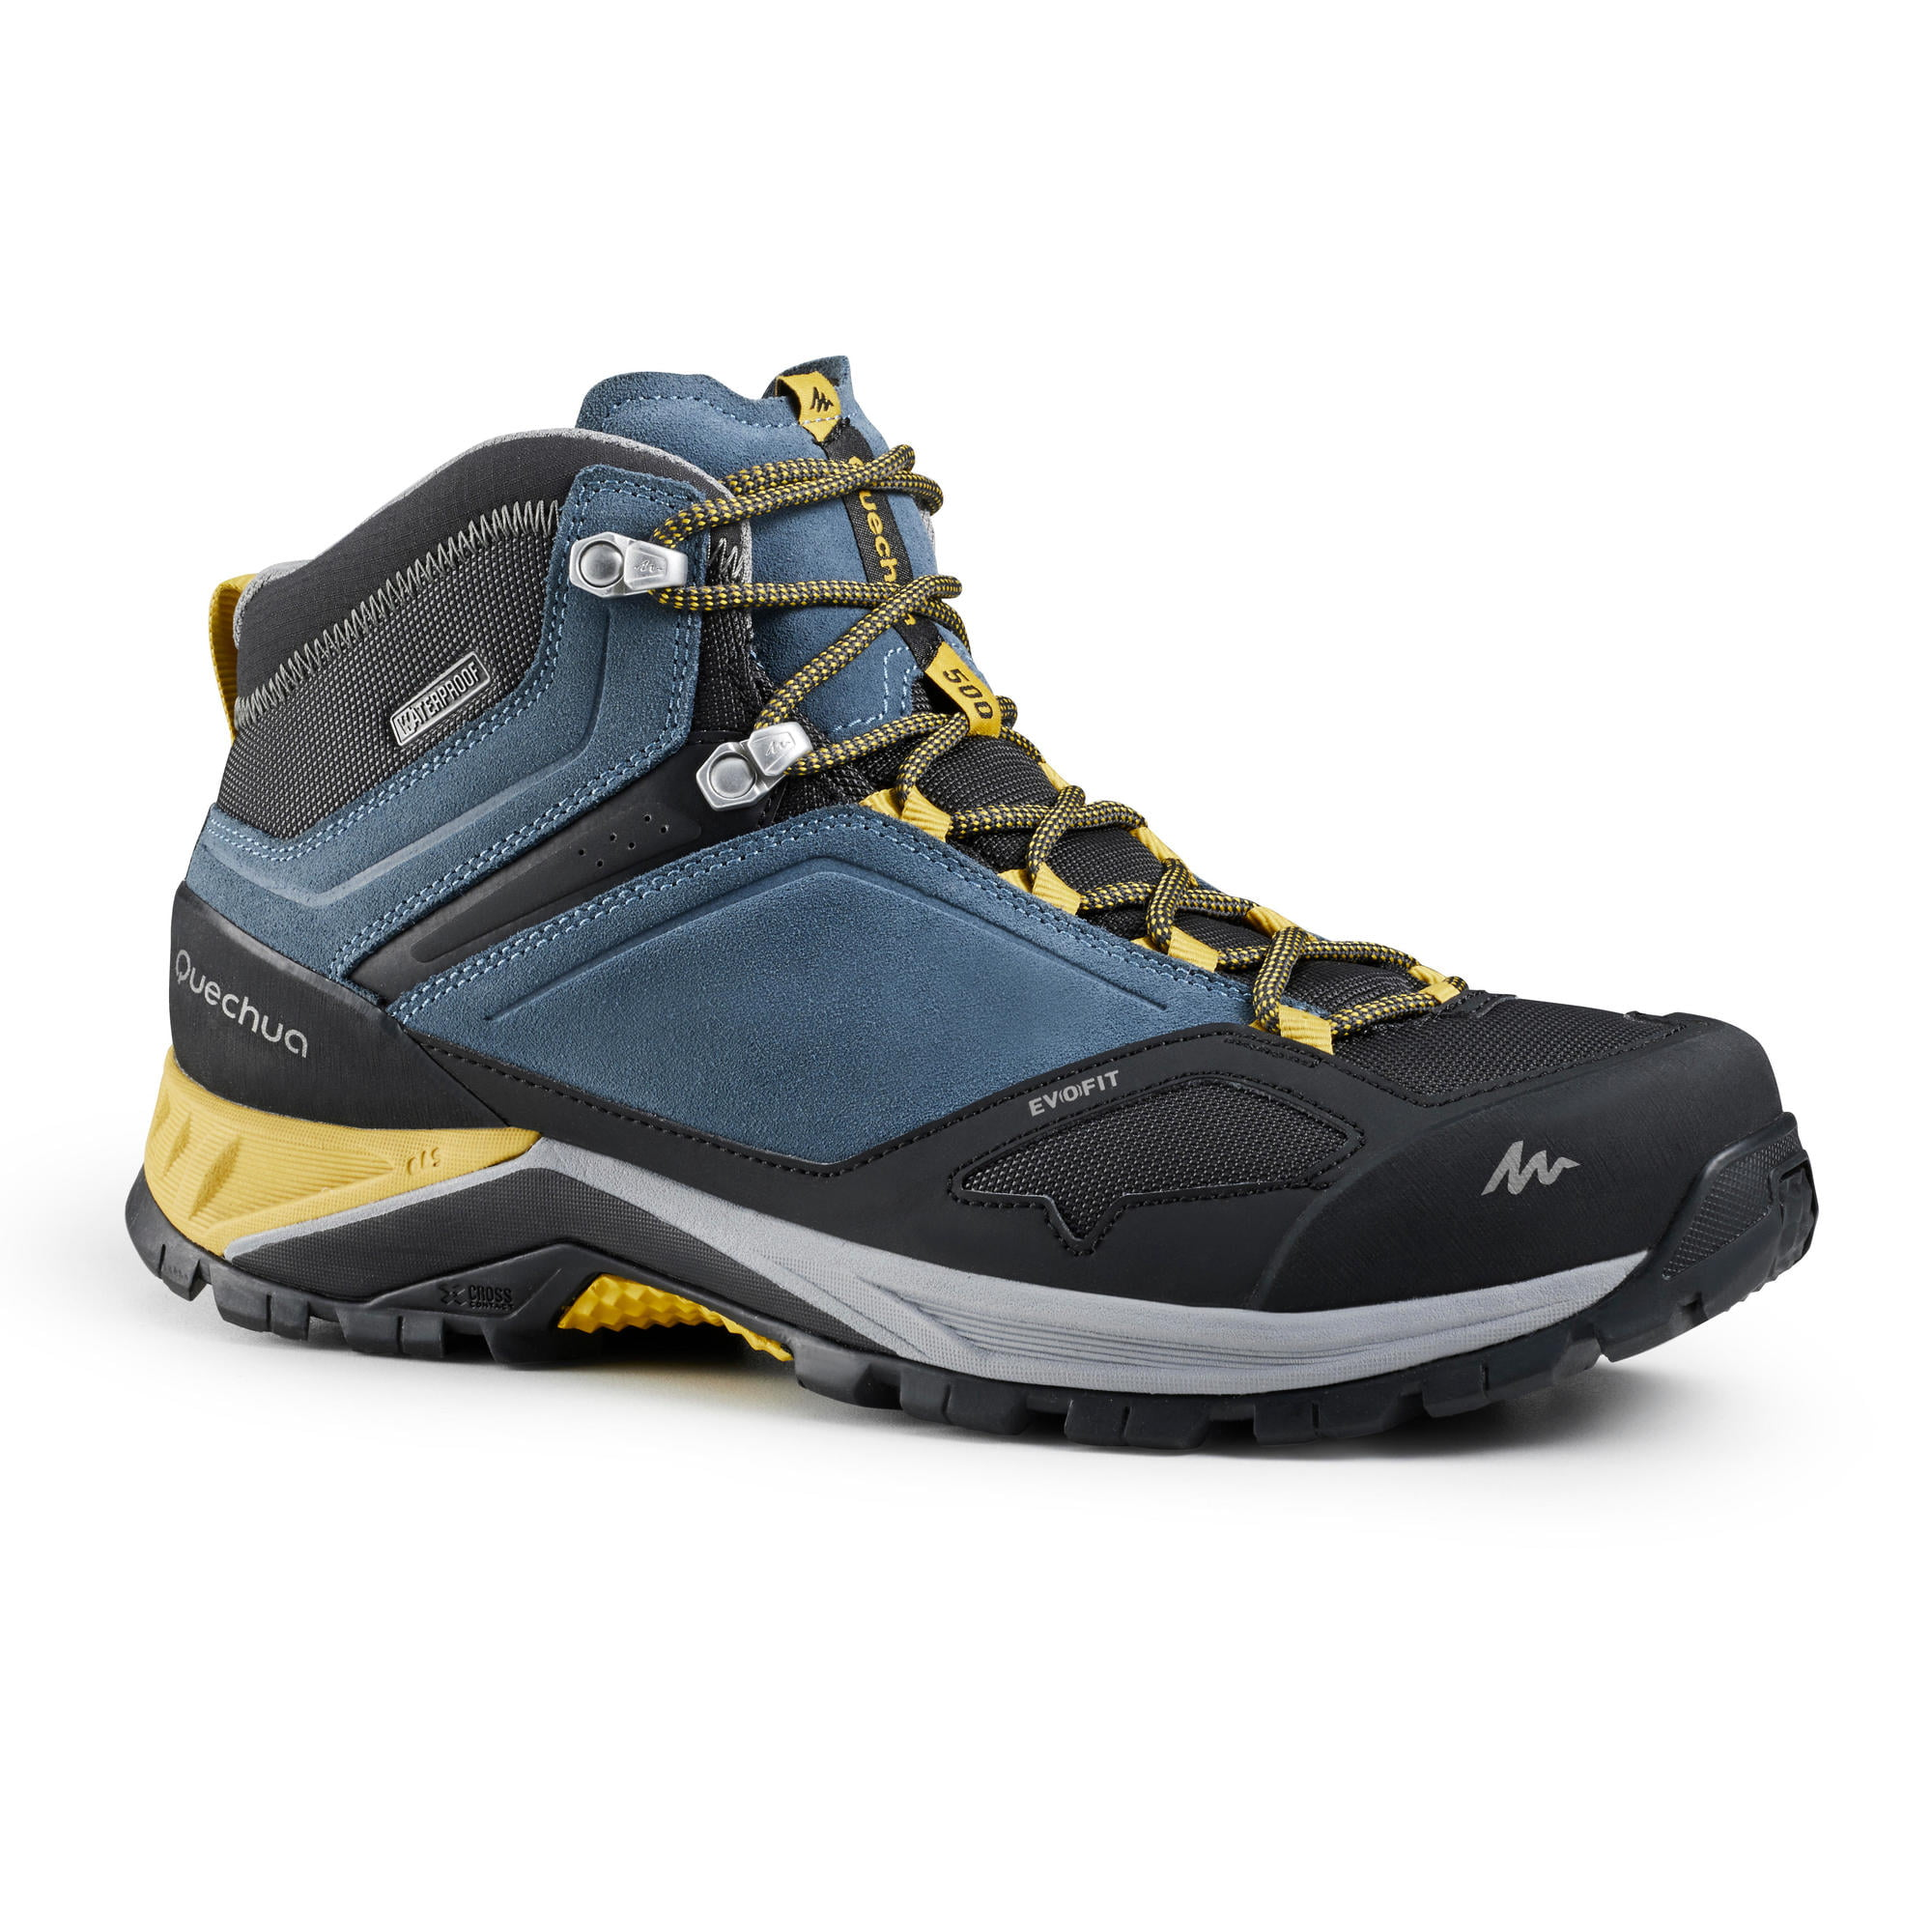 MH500 Mid Waterproof Hiking Shoes